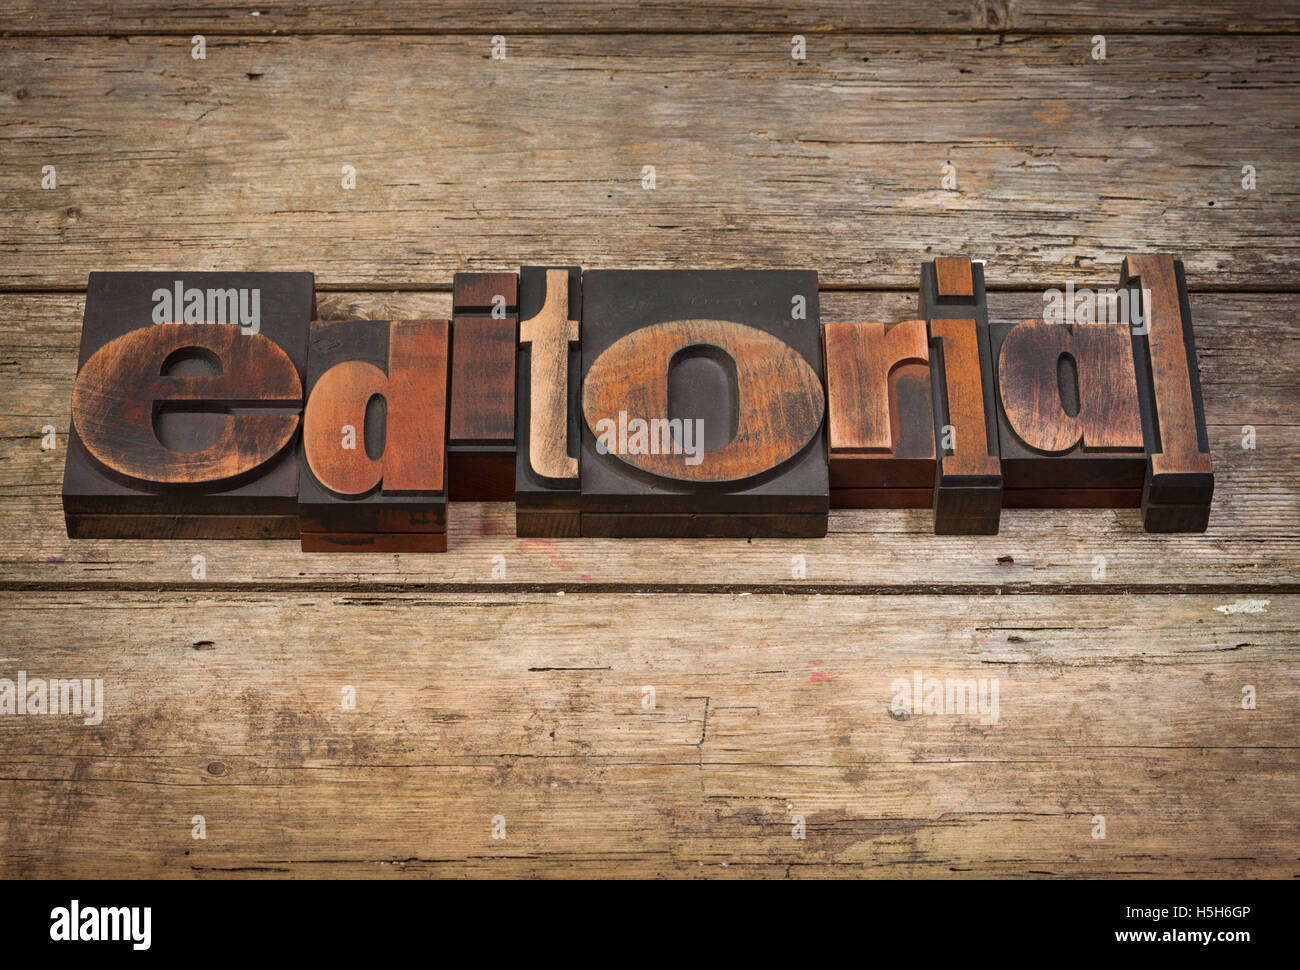 editorial, word written with vintage letterpress printing blocks on rustic wooden background - Stock Image